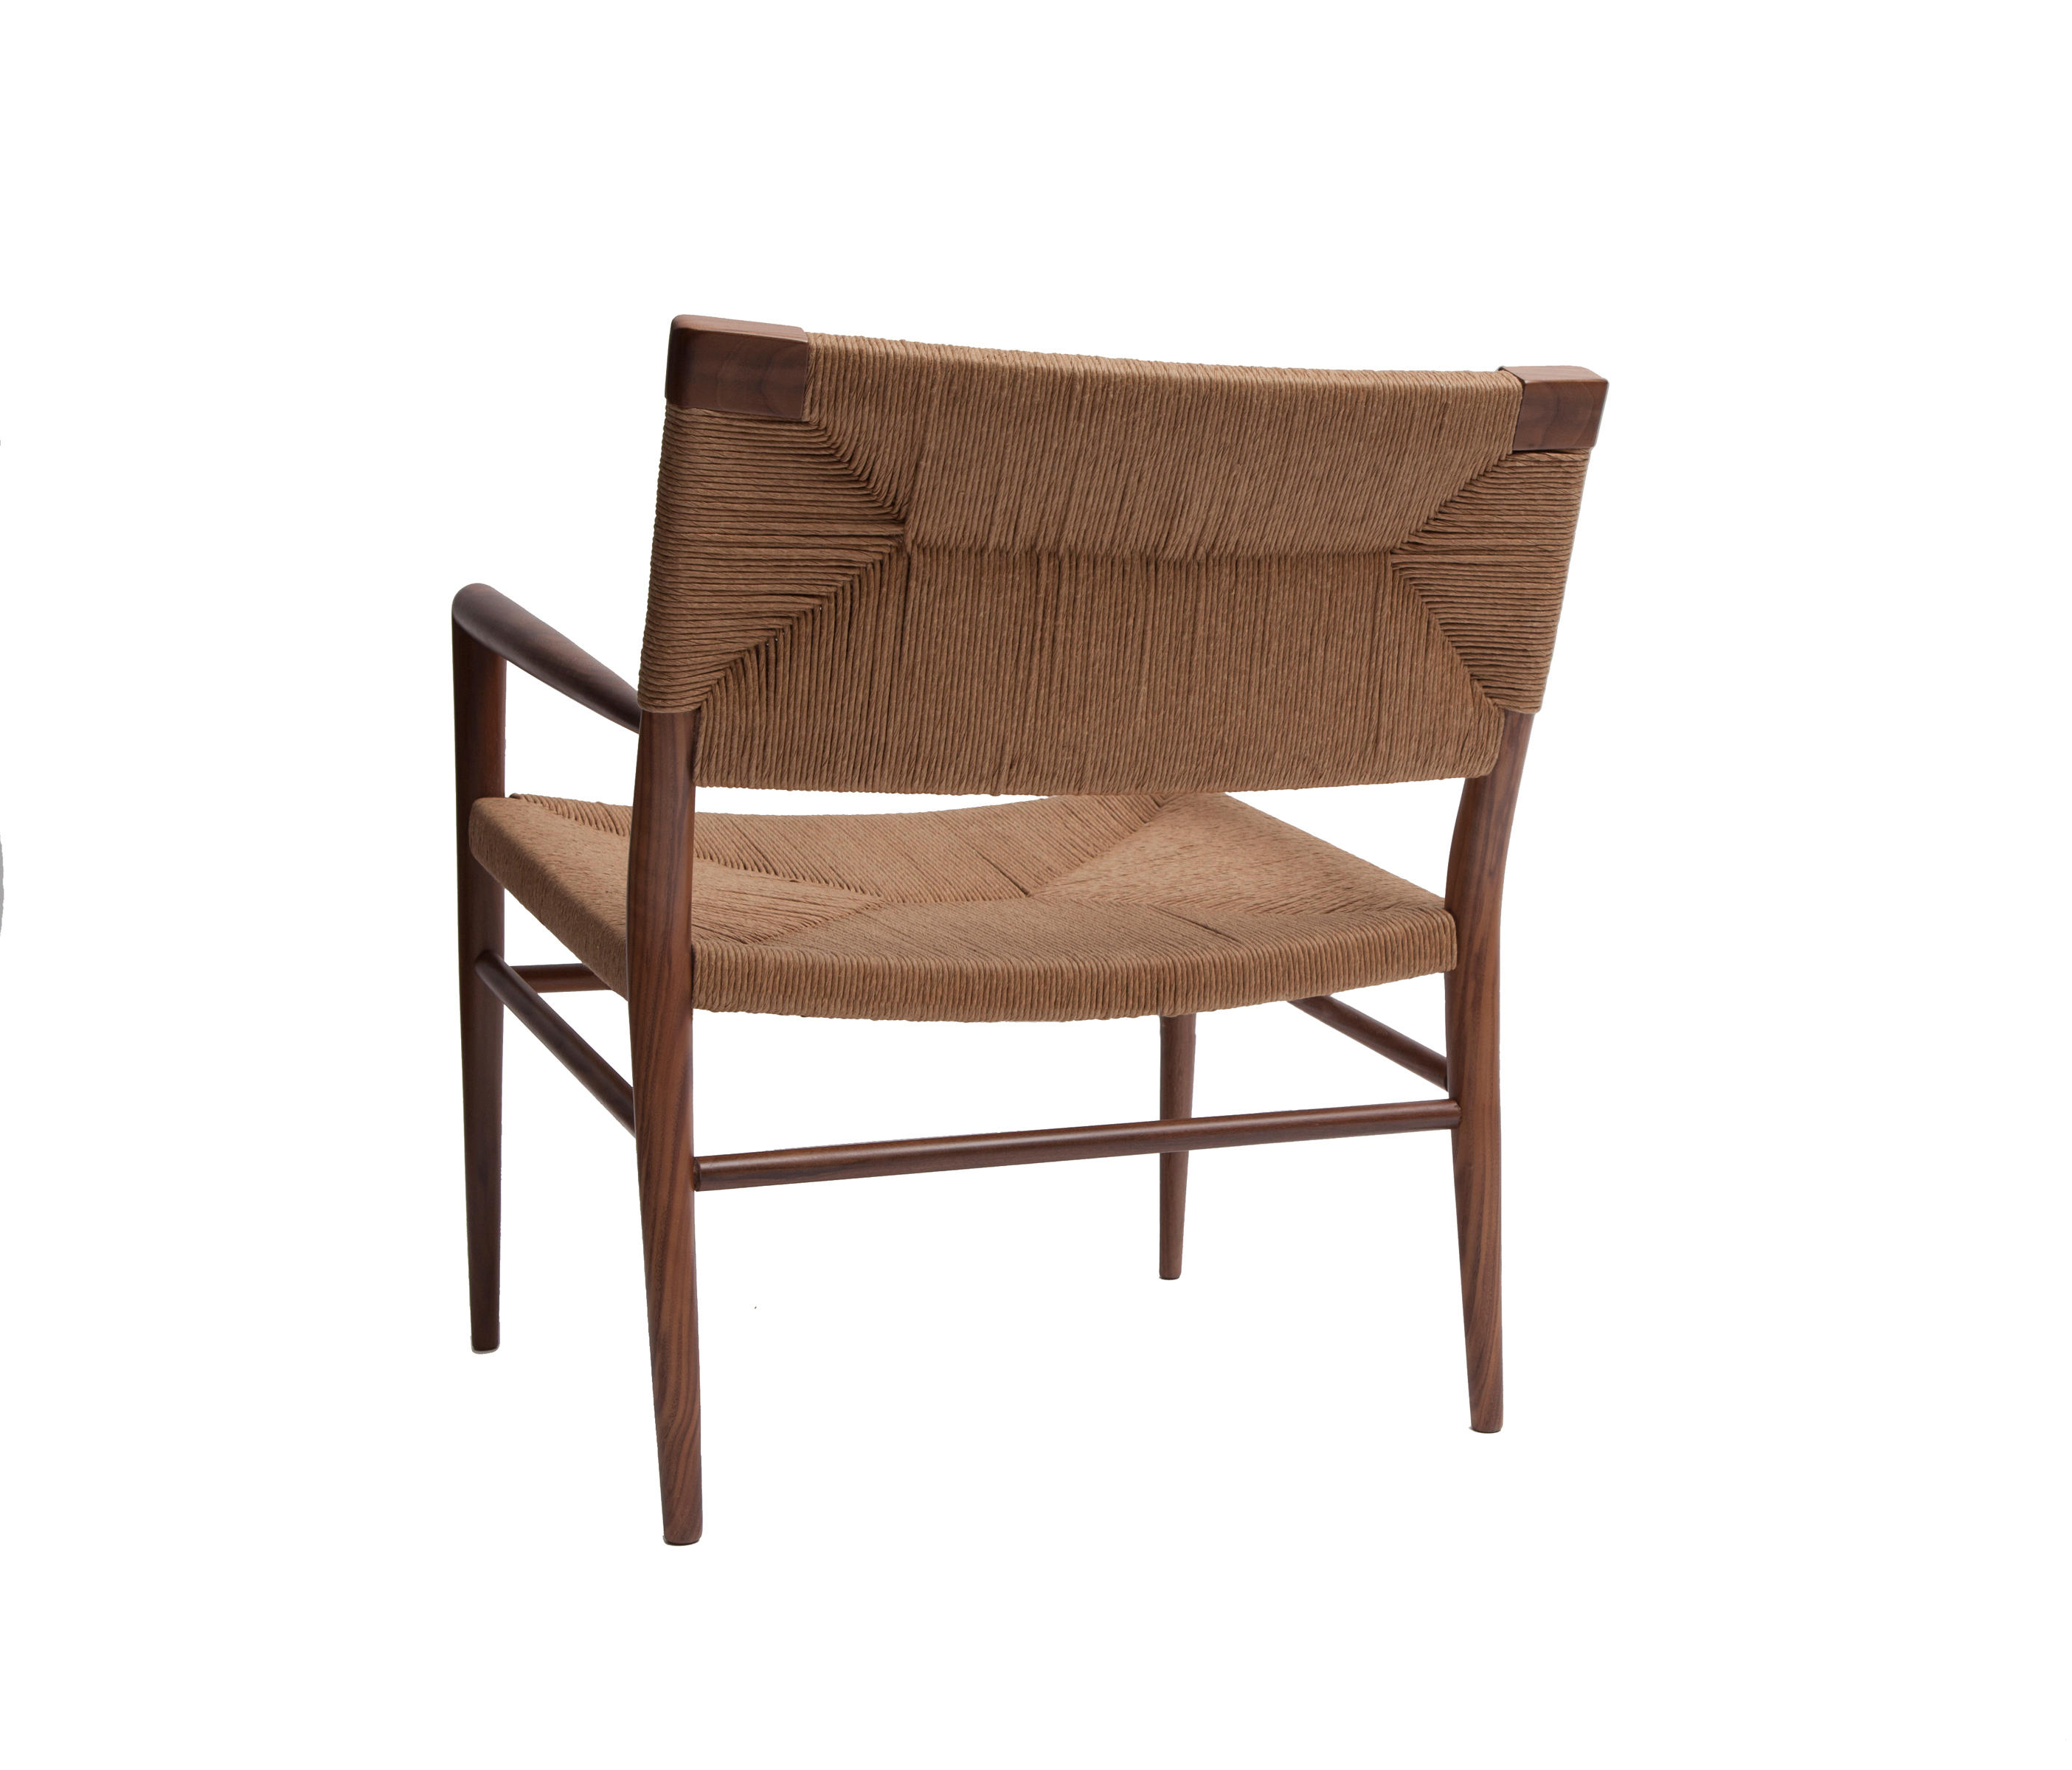 ... Woven Rush Lounge Chair By Smilow Design | Chairs ...